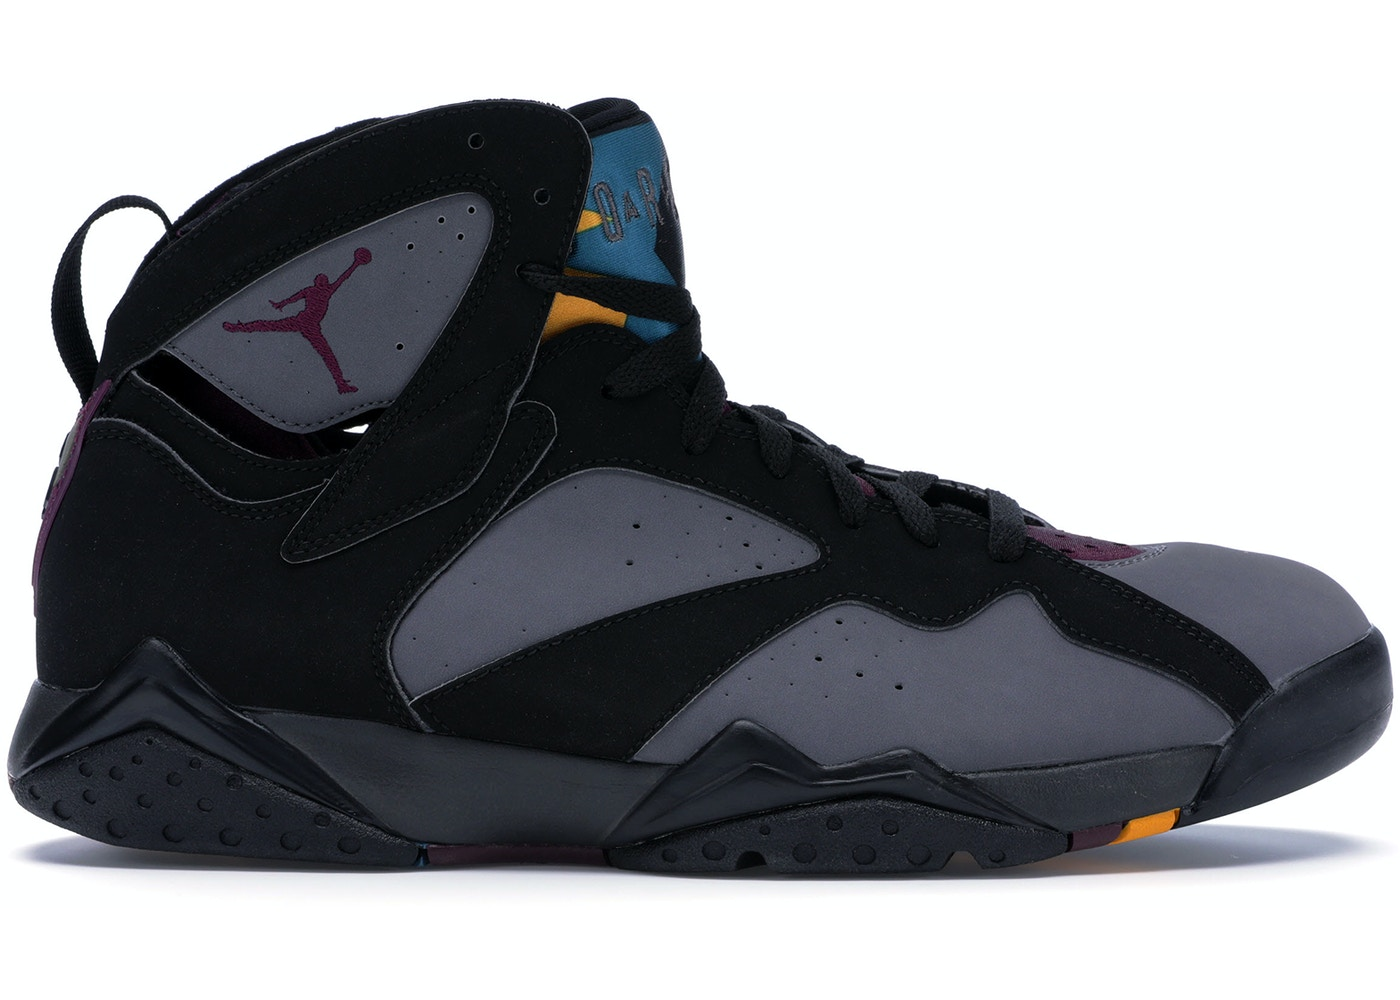 timeless design 89c2a d6c71 Jordan 7 Retro Bordeaux (2015)